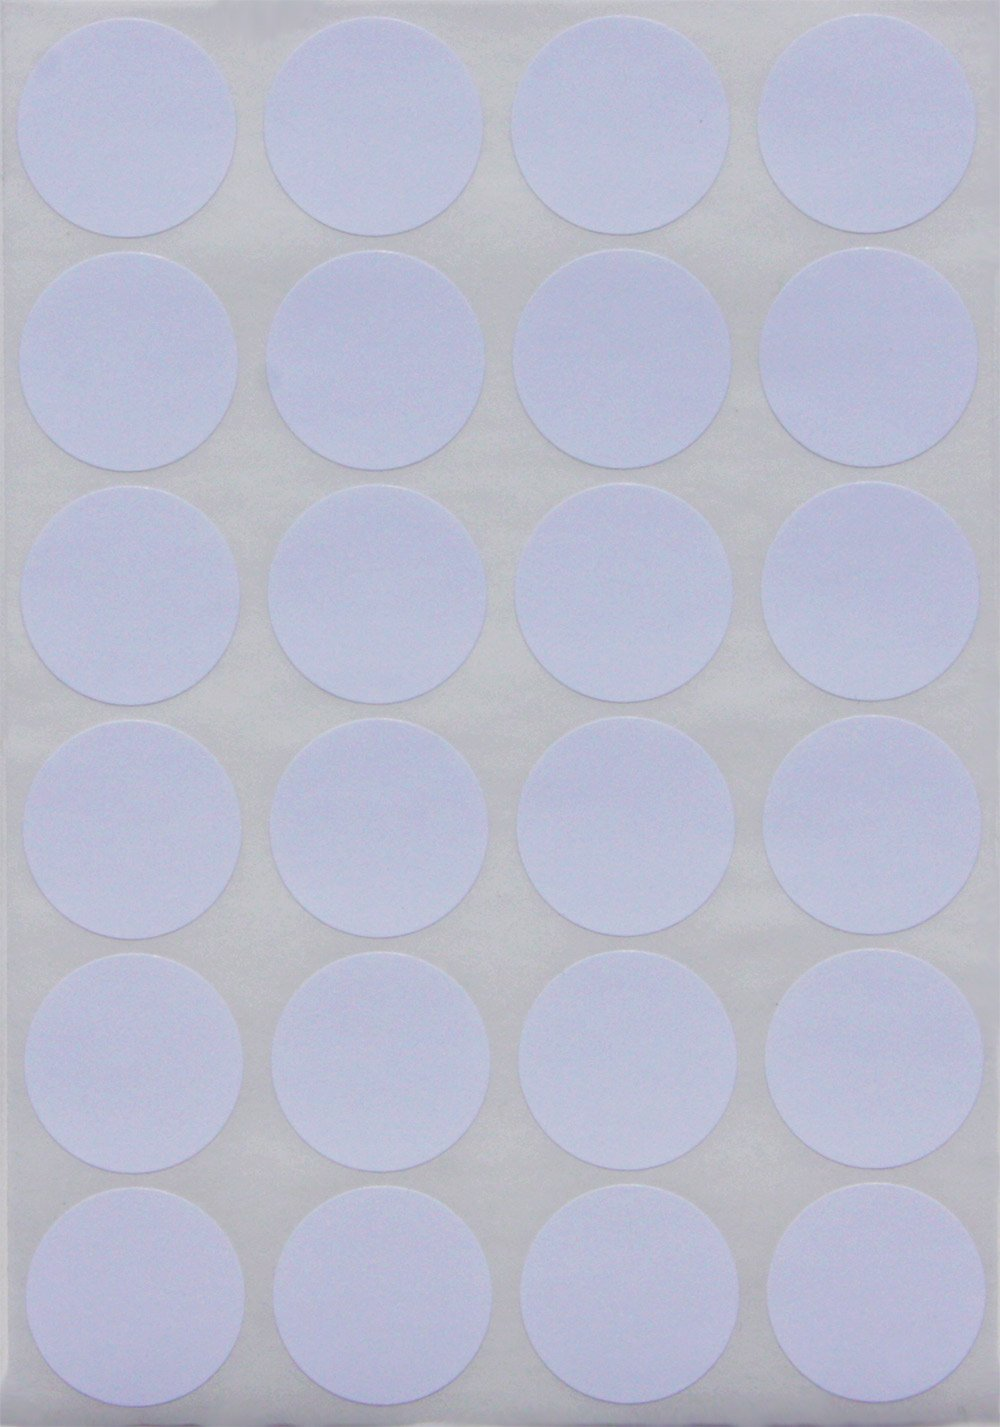 Royal Green White dot Stickers Round Labels - Circle Stickers 25mm - 360 Pack